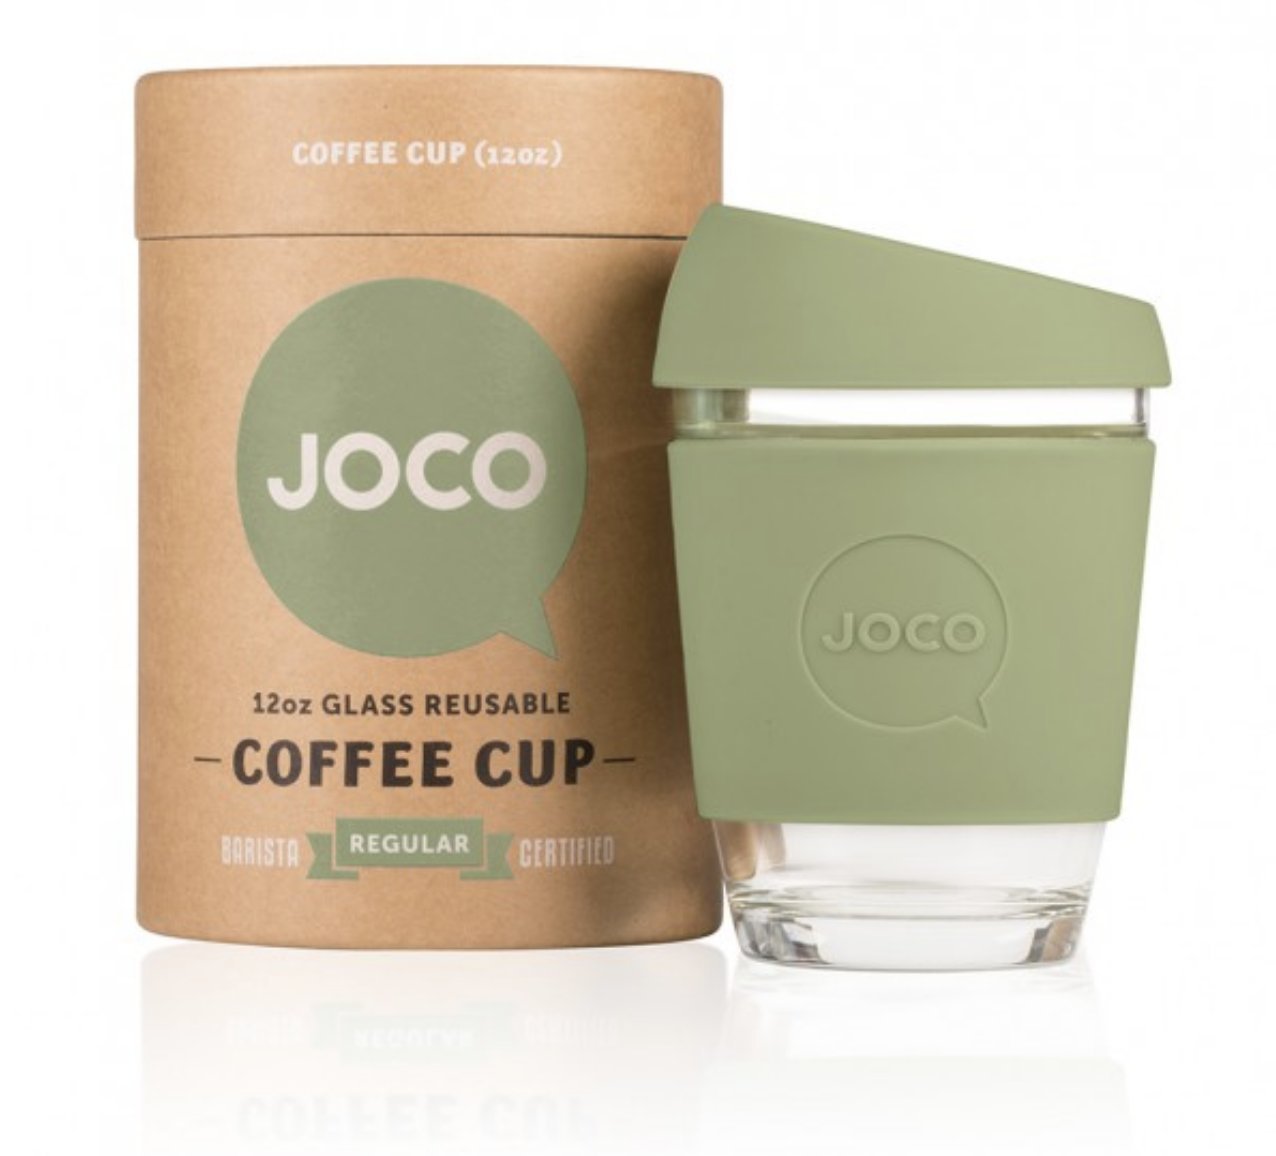 Joco Resuable Coffee Cup.jpg